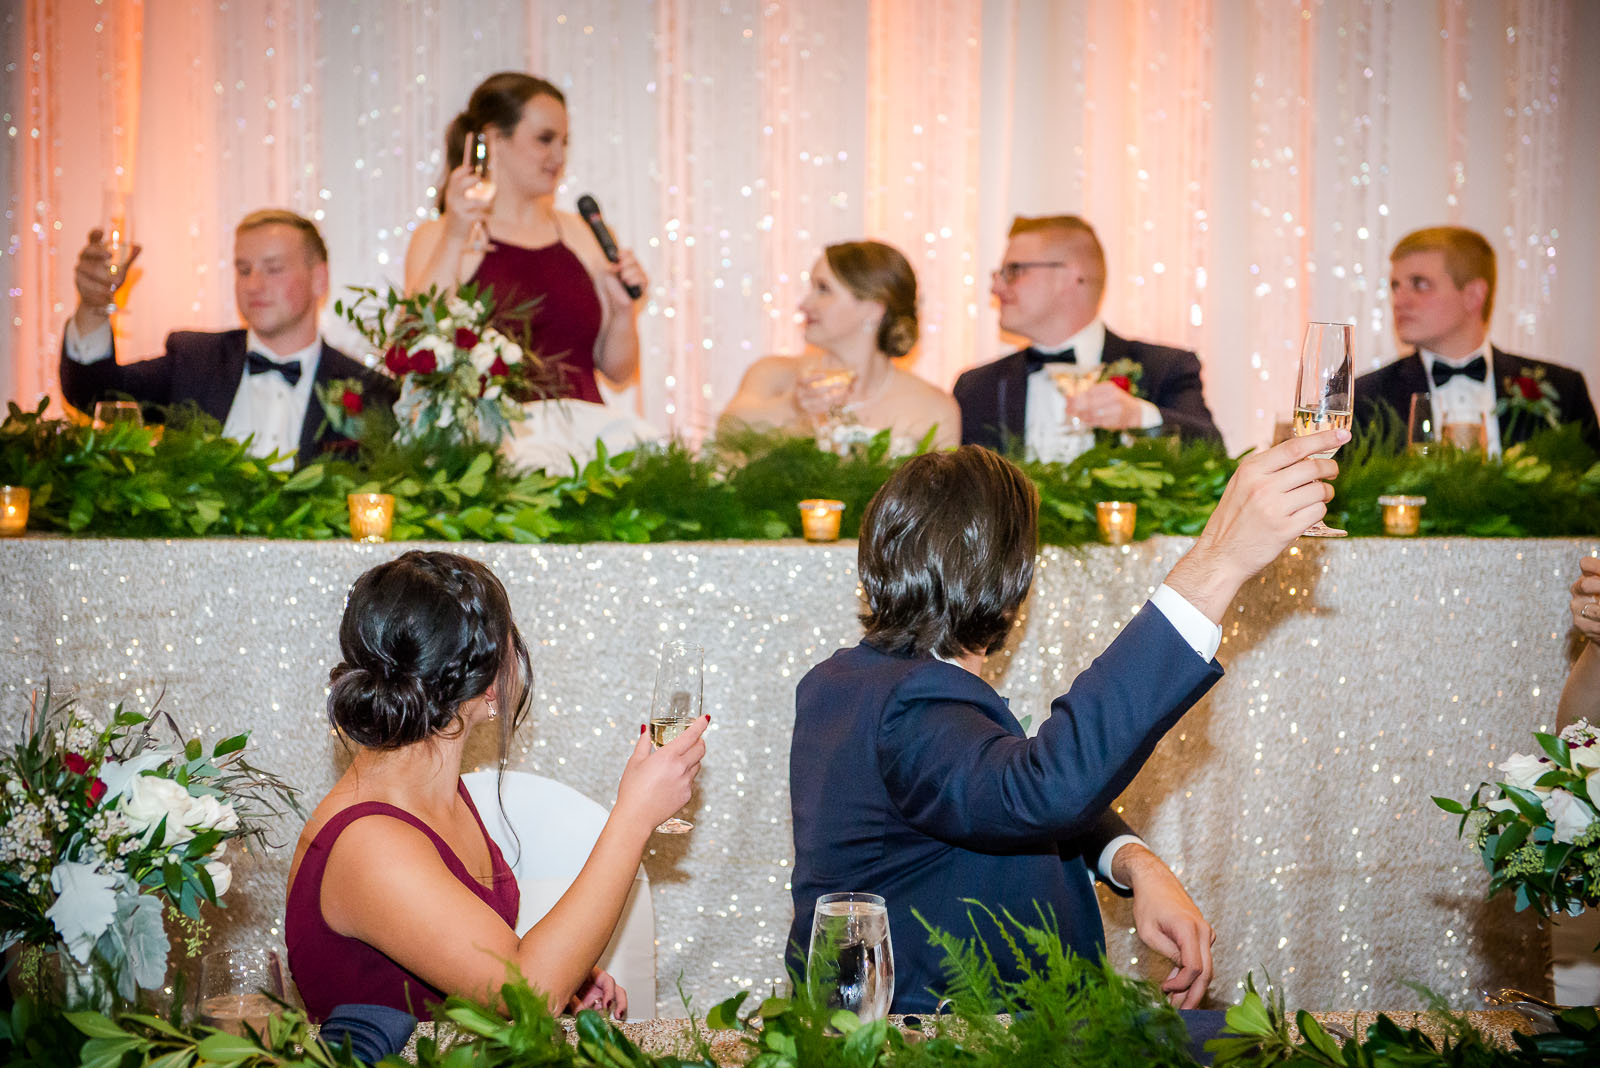 Eric_and_Christy_Photography_Blog_2018_Wed_moments-38